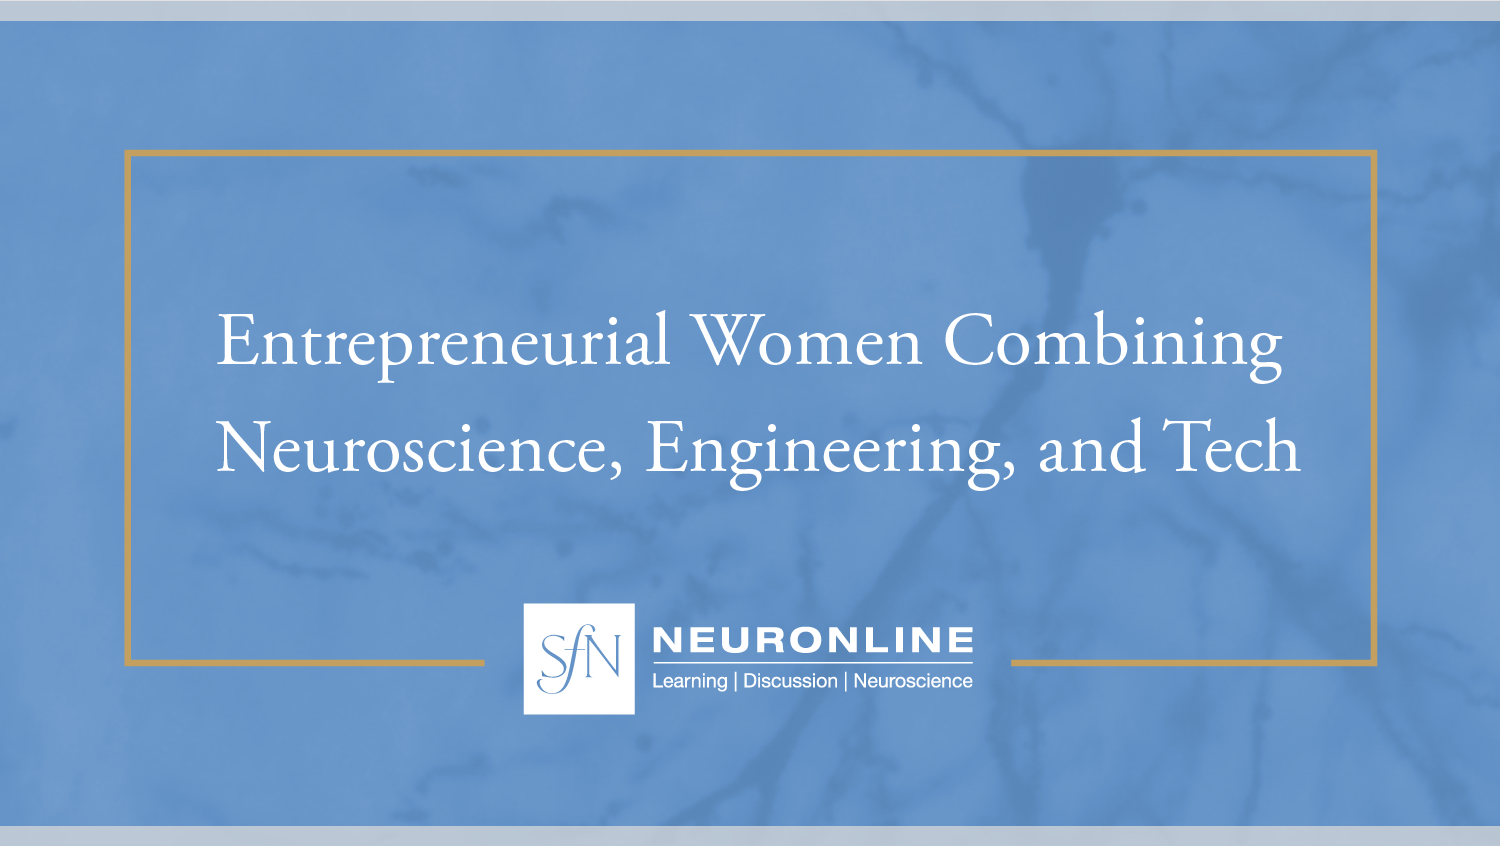 "Title card stating ""Entrepreneurial Women Combining Neuroscience, Engineering, and Tech"" on a blue background with the Neuronline logo below."